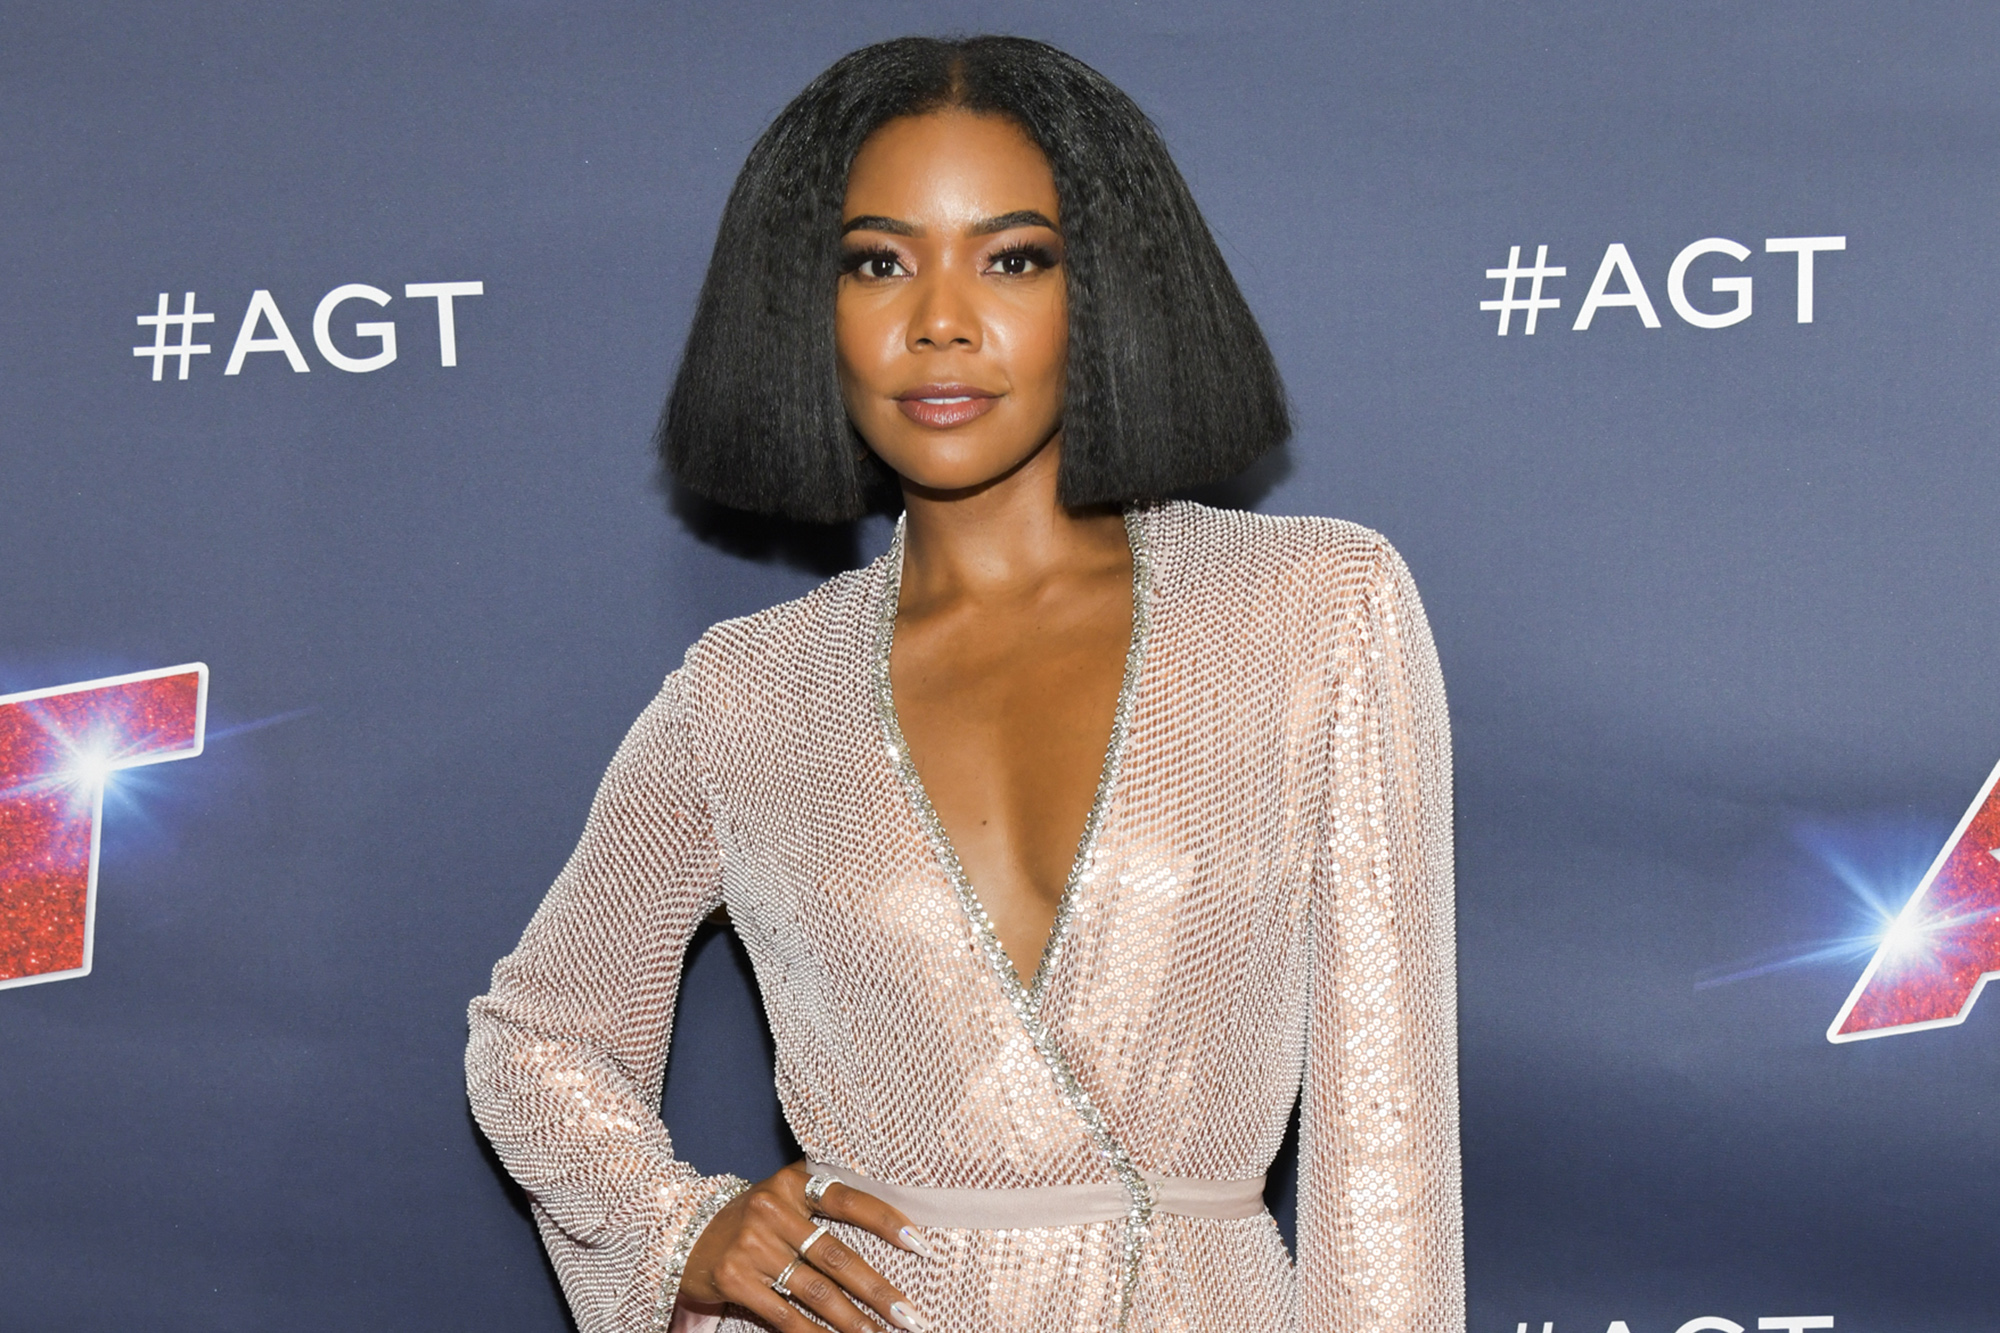 gabrielle-union-drops-a-motivational-message-for-her-fans-see-her-latest-gorgeous-photo-session